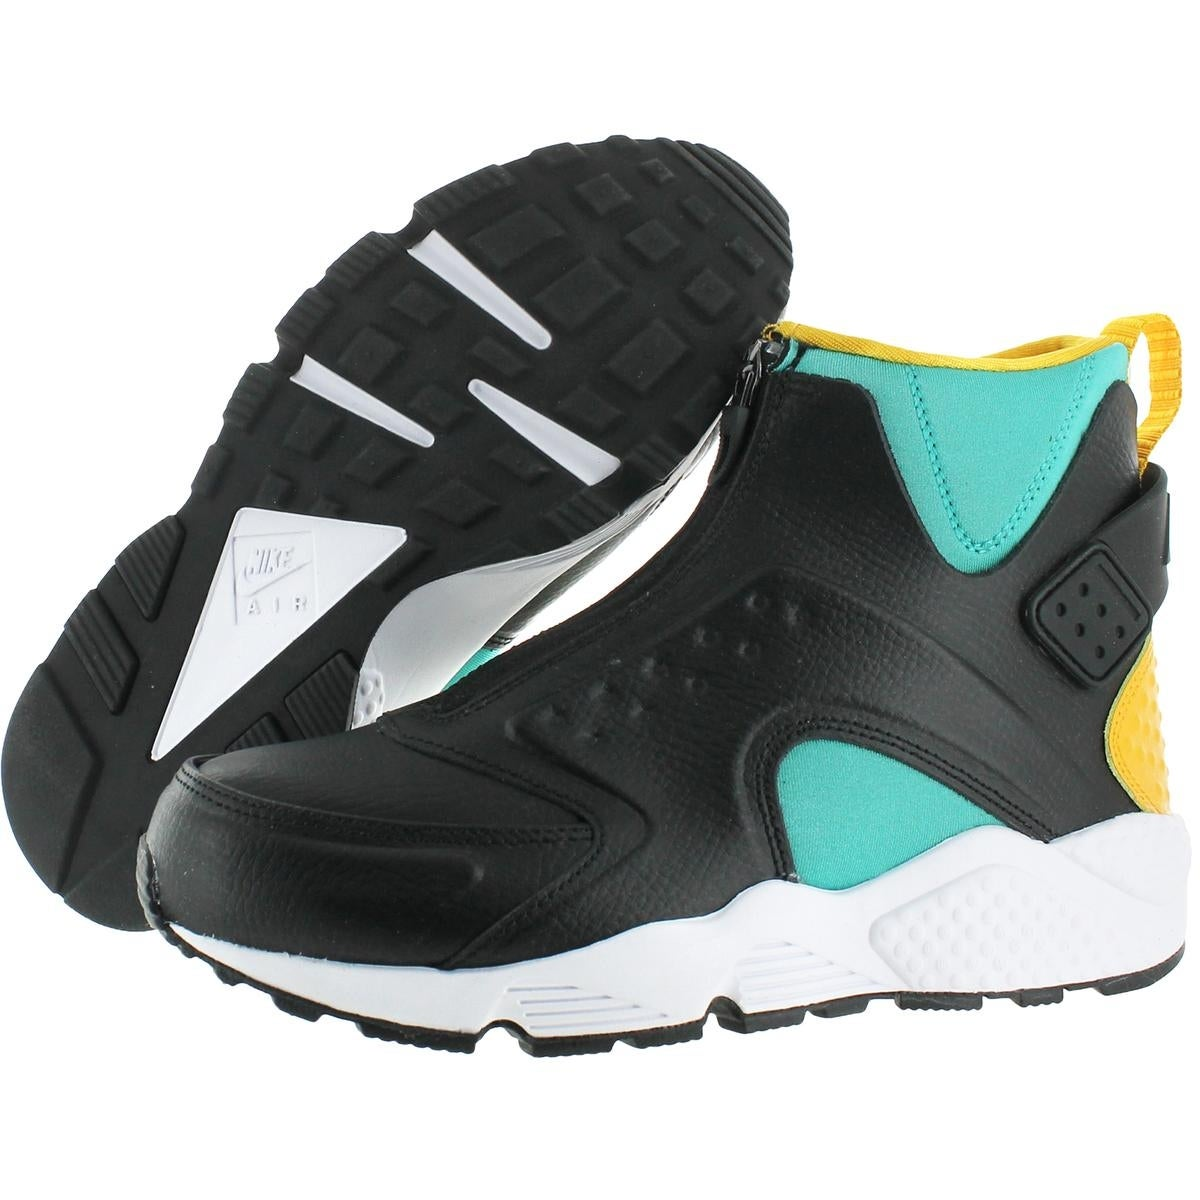 0787ddc16a15b Shop Nike Womens Air Huarache Run Mid High Top Sneakers Training Embossed -  Free Shipping Today - Overstock - 21942758